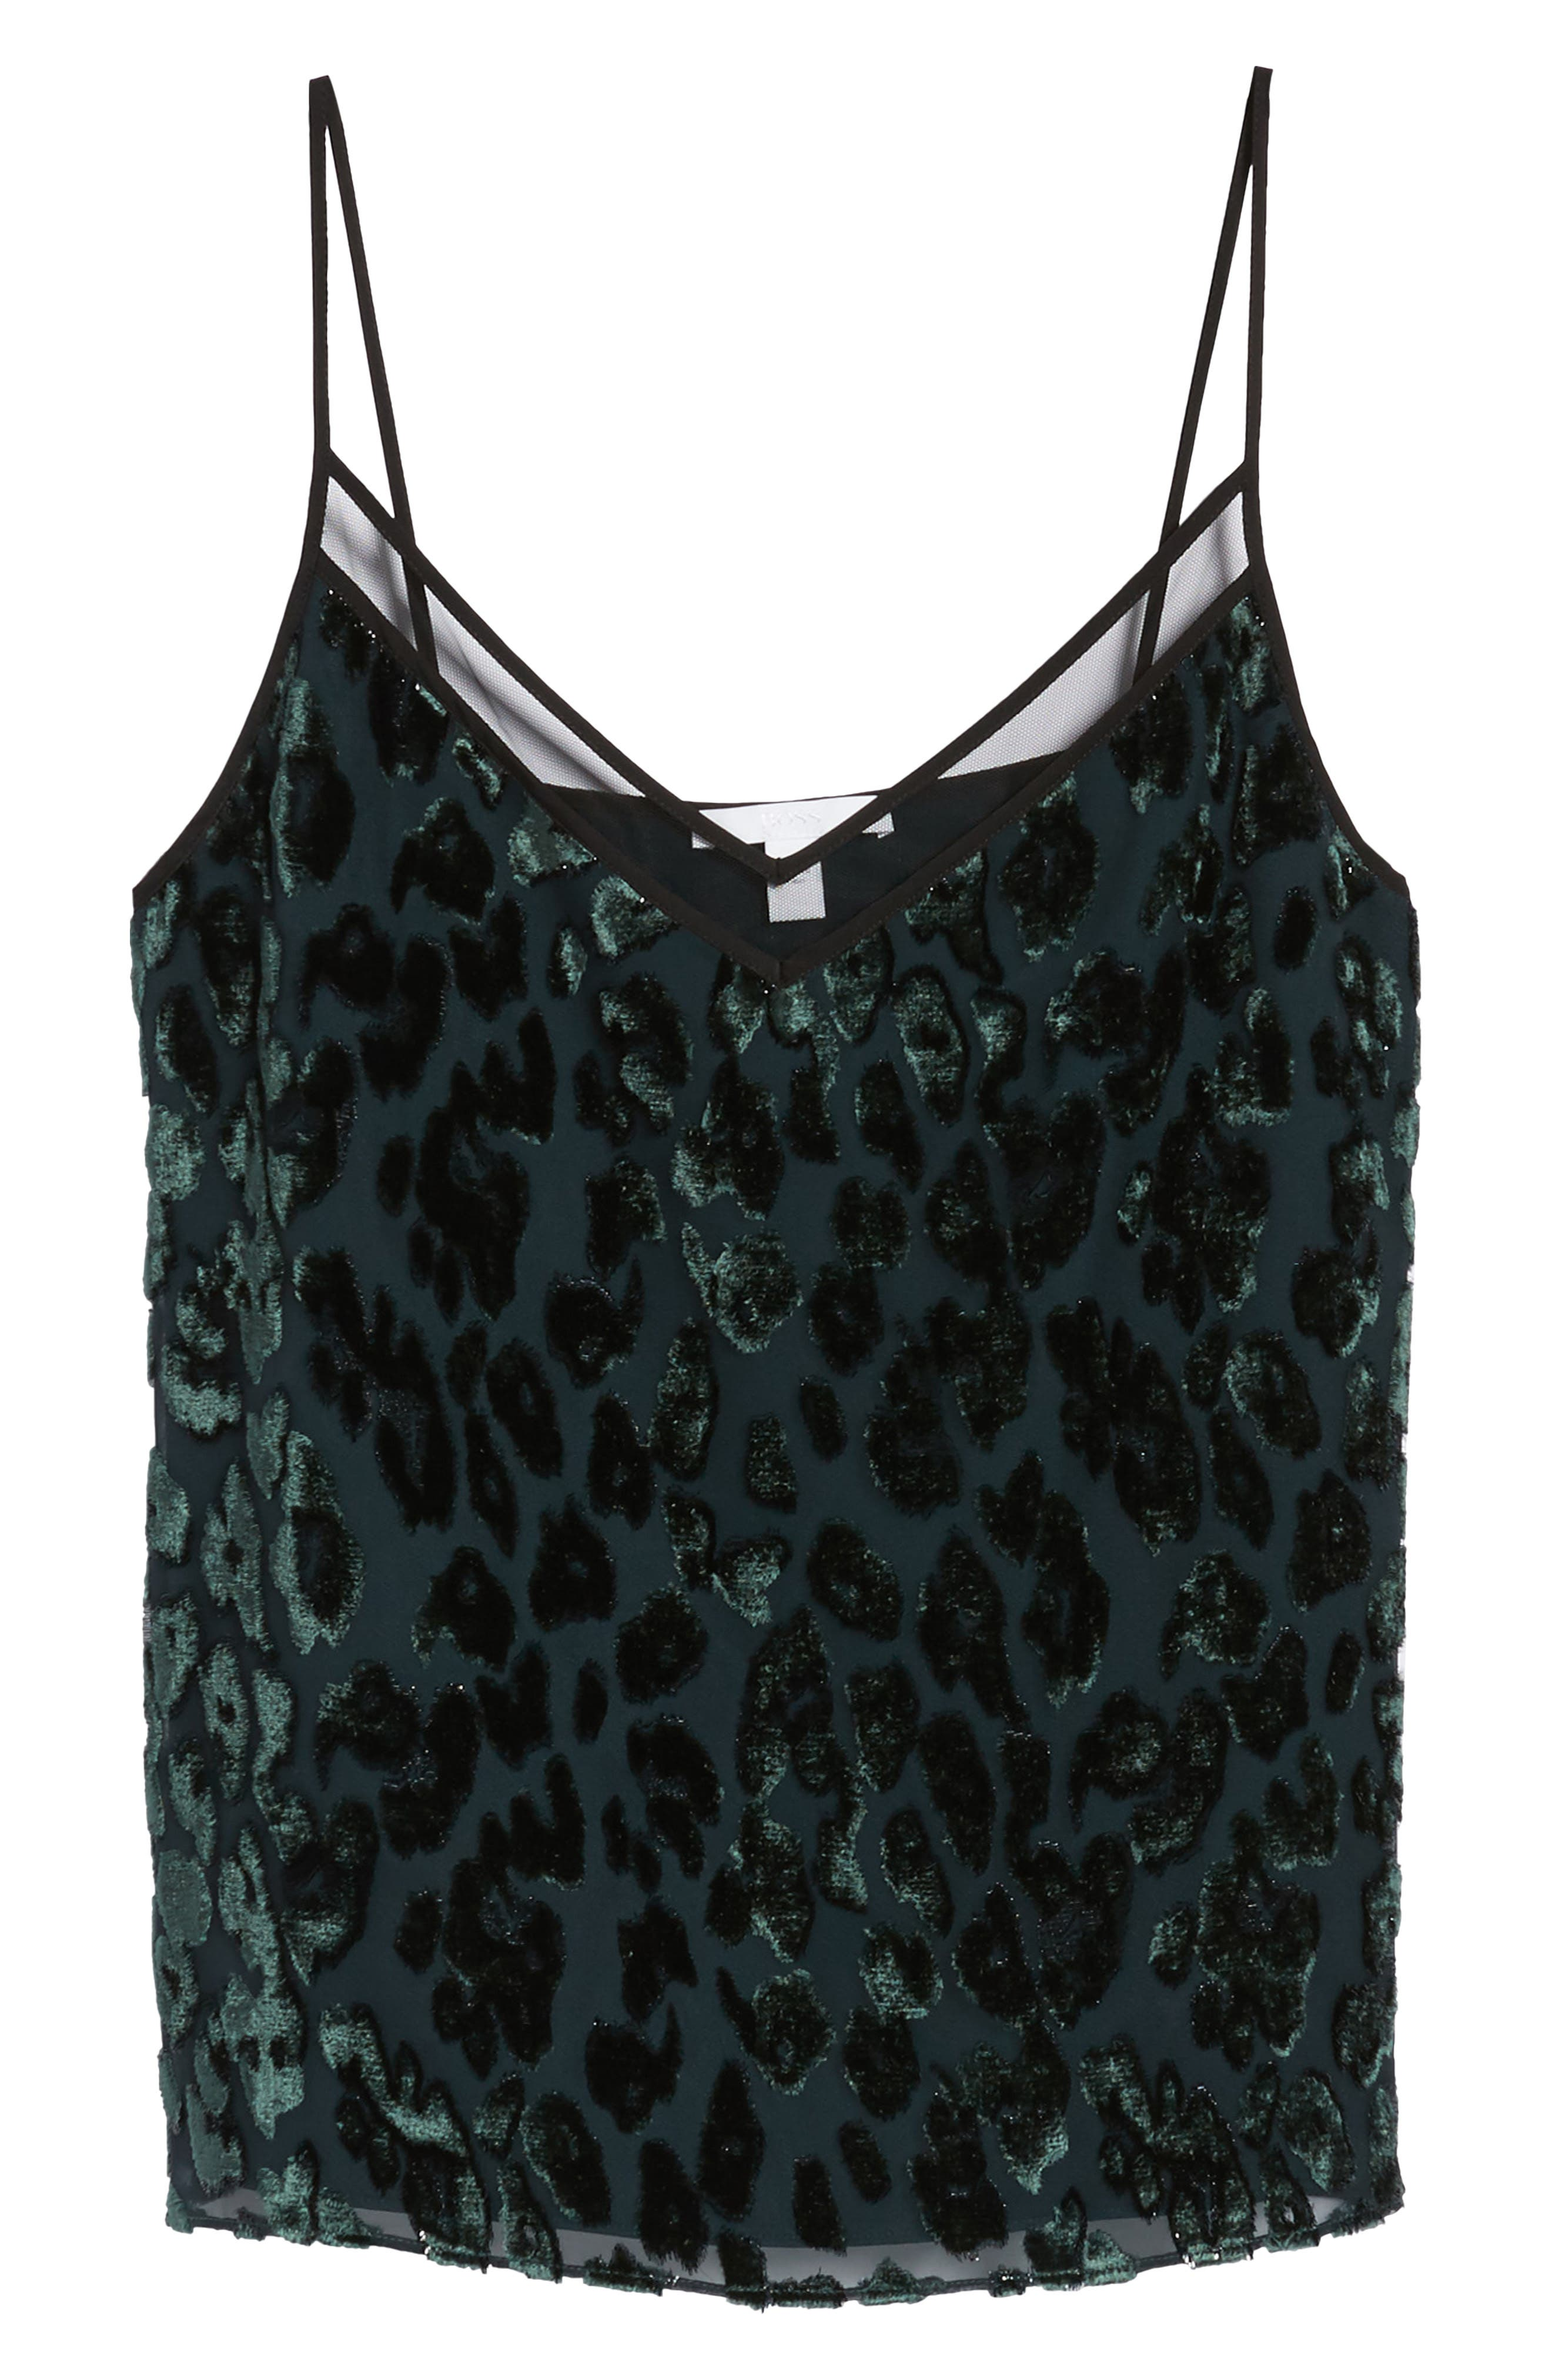 Ilomea Metallic Velvet Camisole,                             Alternate thumbnail 6, color,